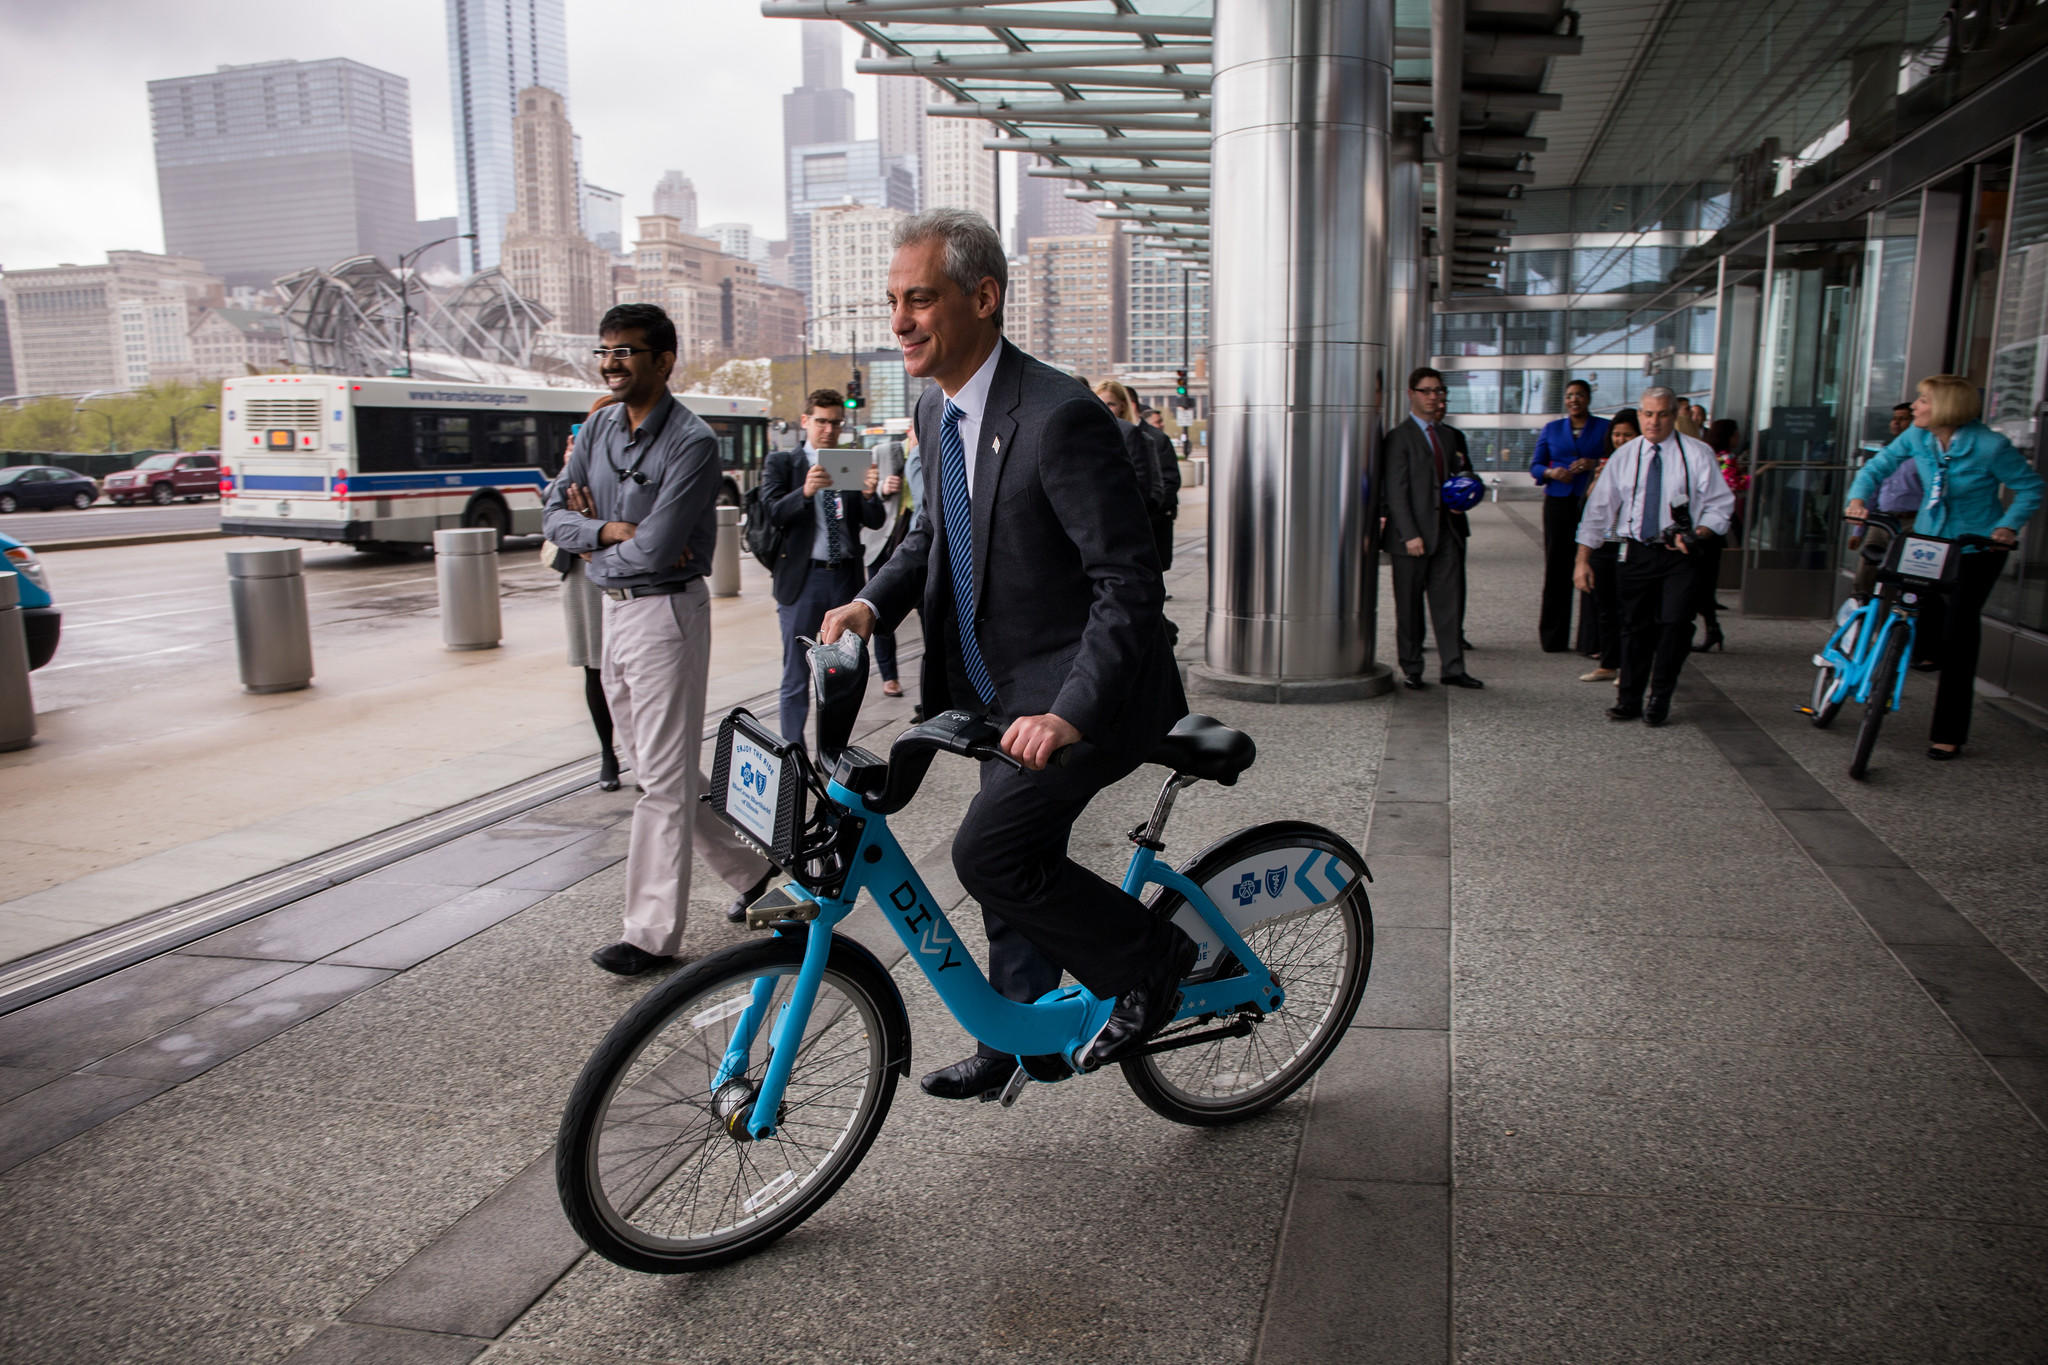 Mayor Rahm Emanuel rides Divvy bike in front of the Blue Cross Blue Shield of Illinois building after announcing a new partnership to support Divvy bike share and bicycling programs in Chicago on May 1.